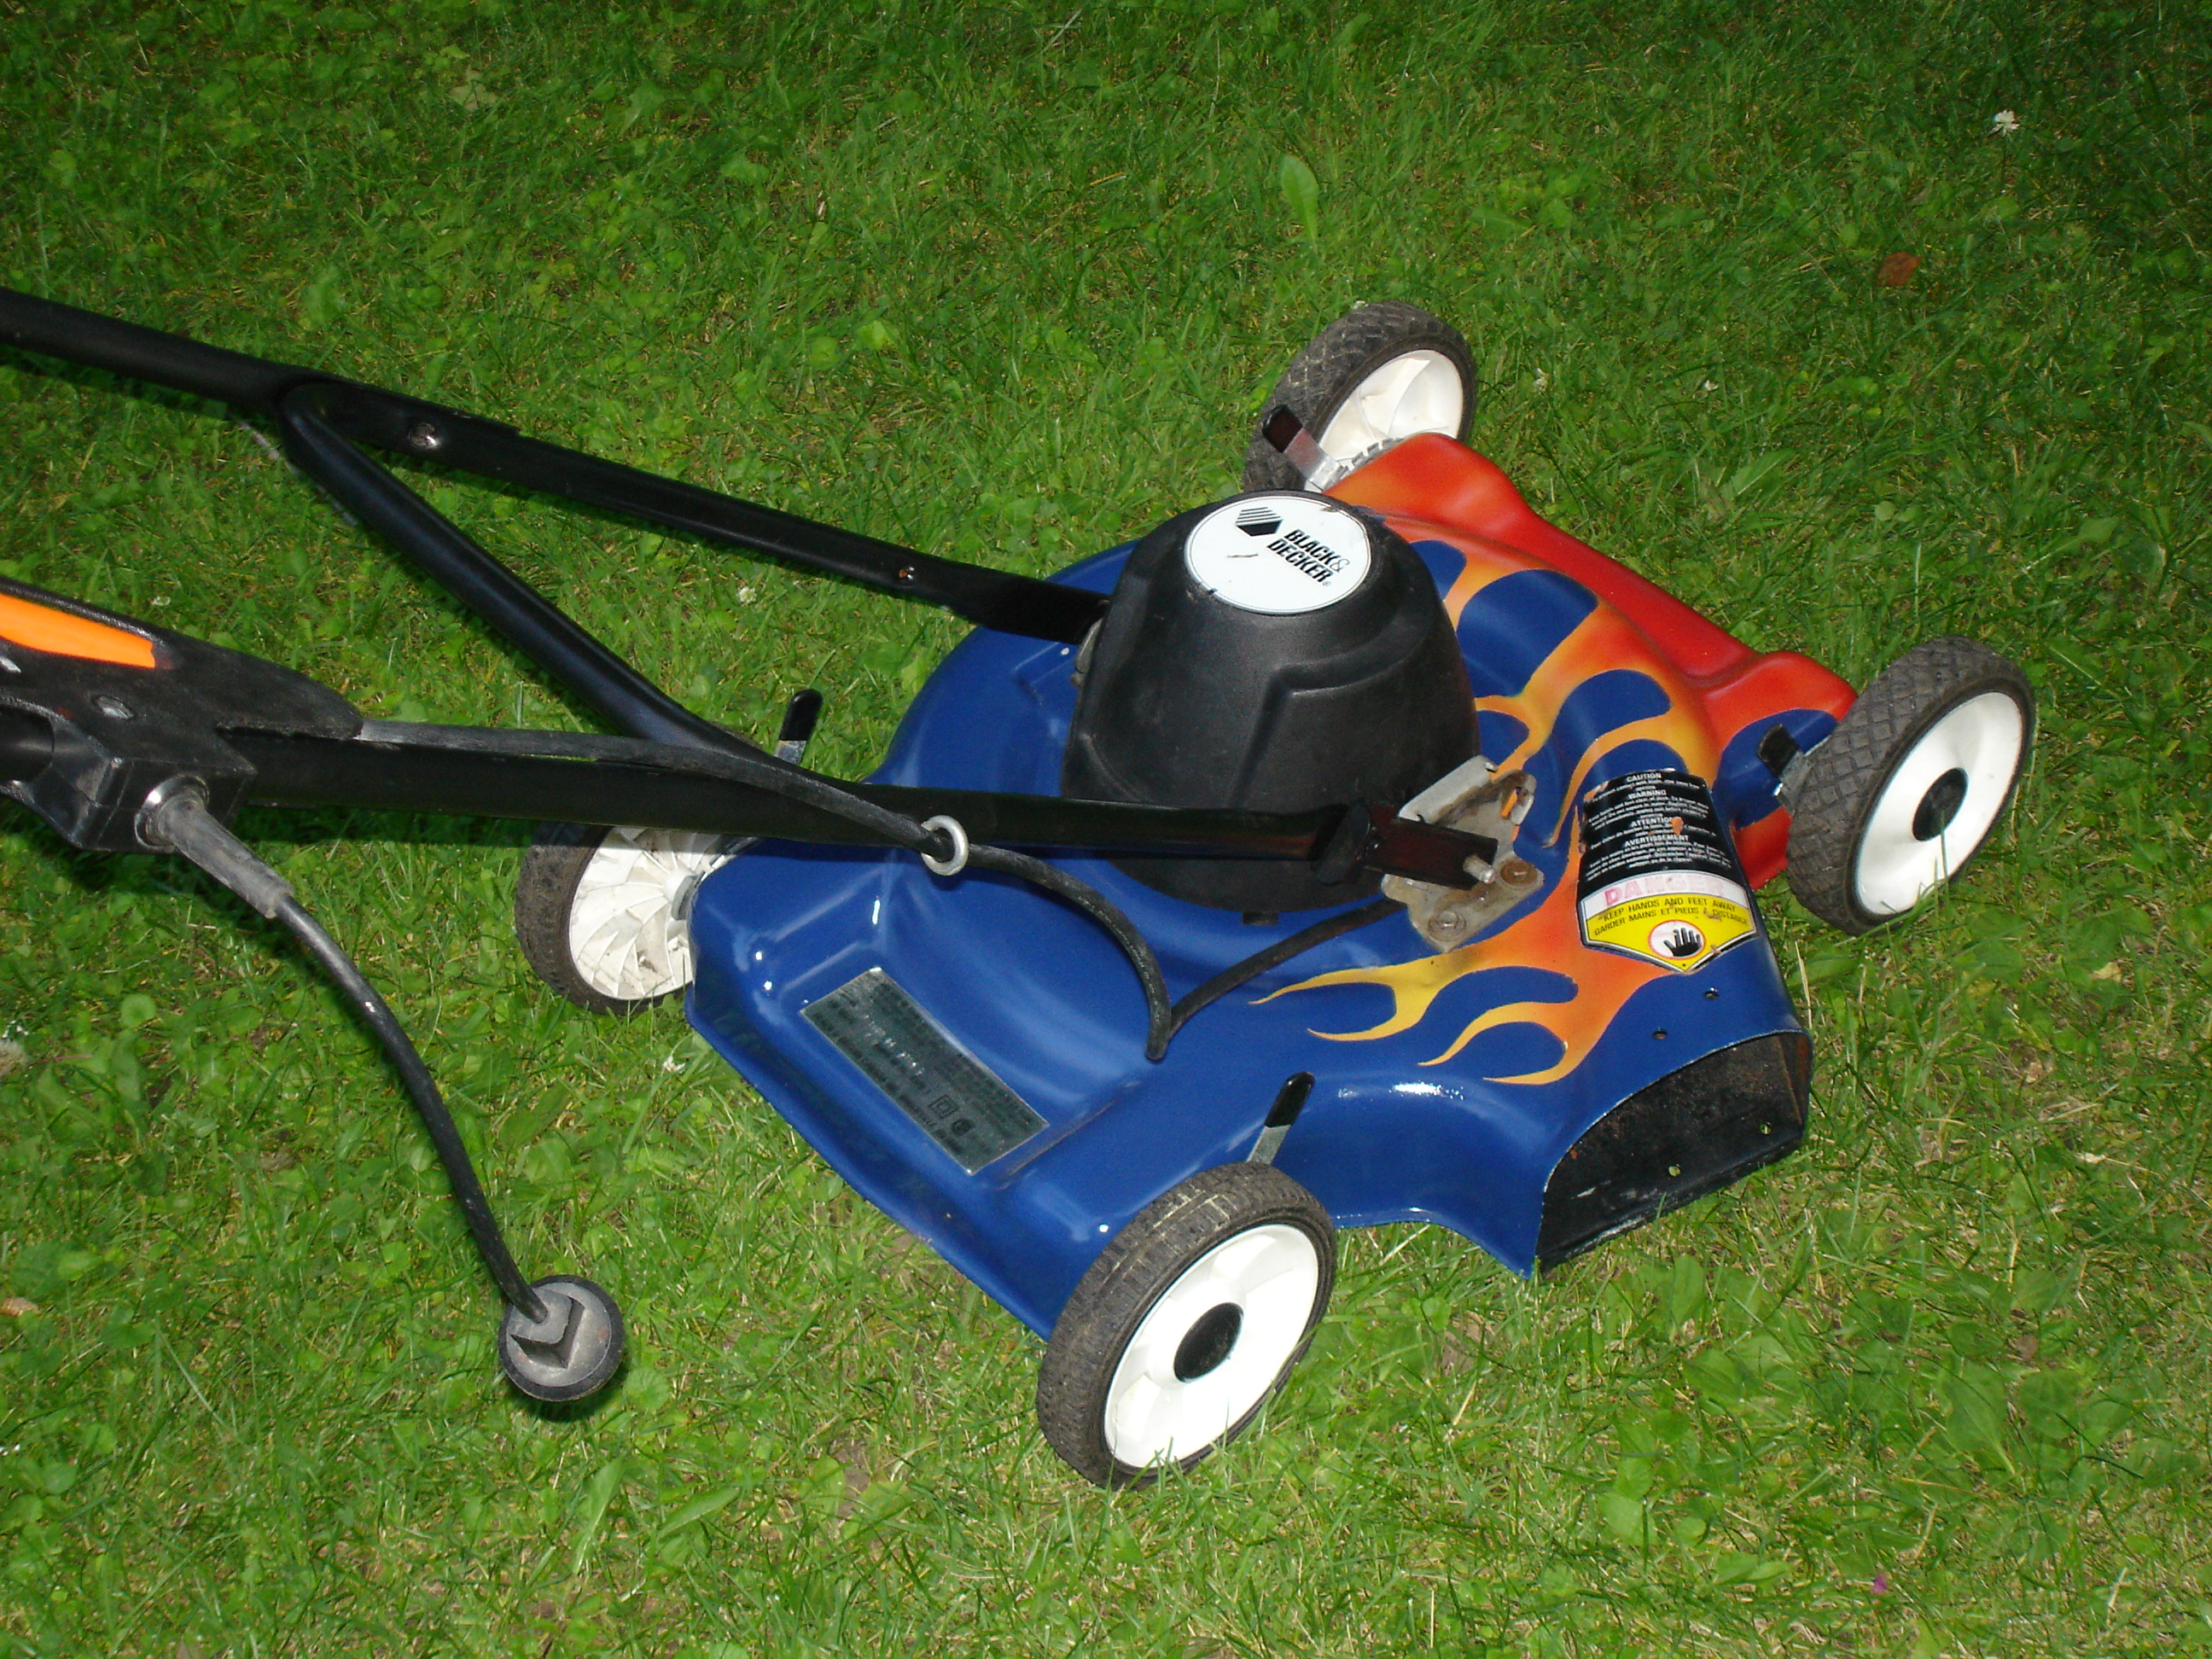 Picture of Flaming Lawnmower Paint Job